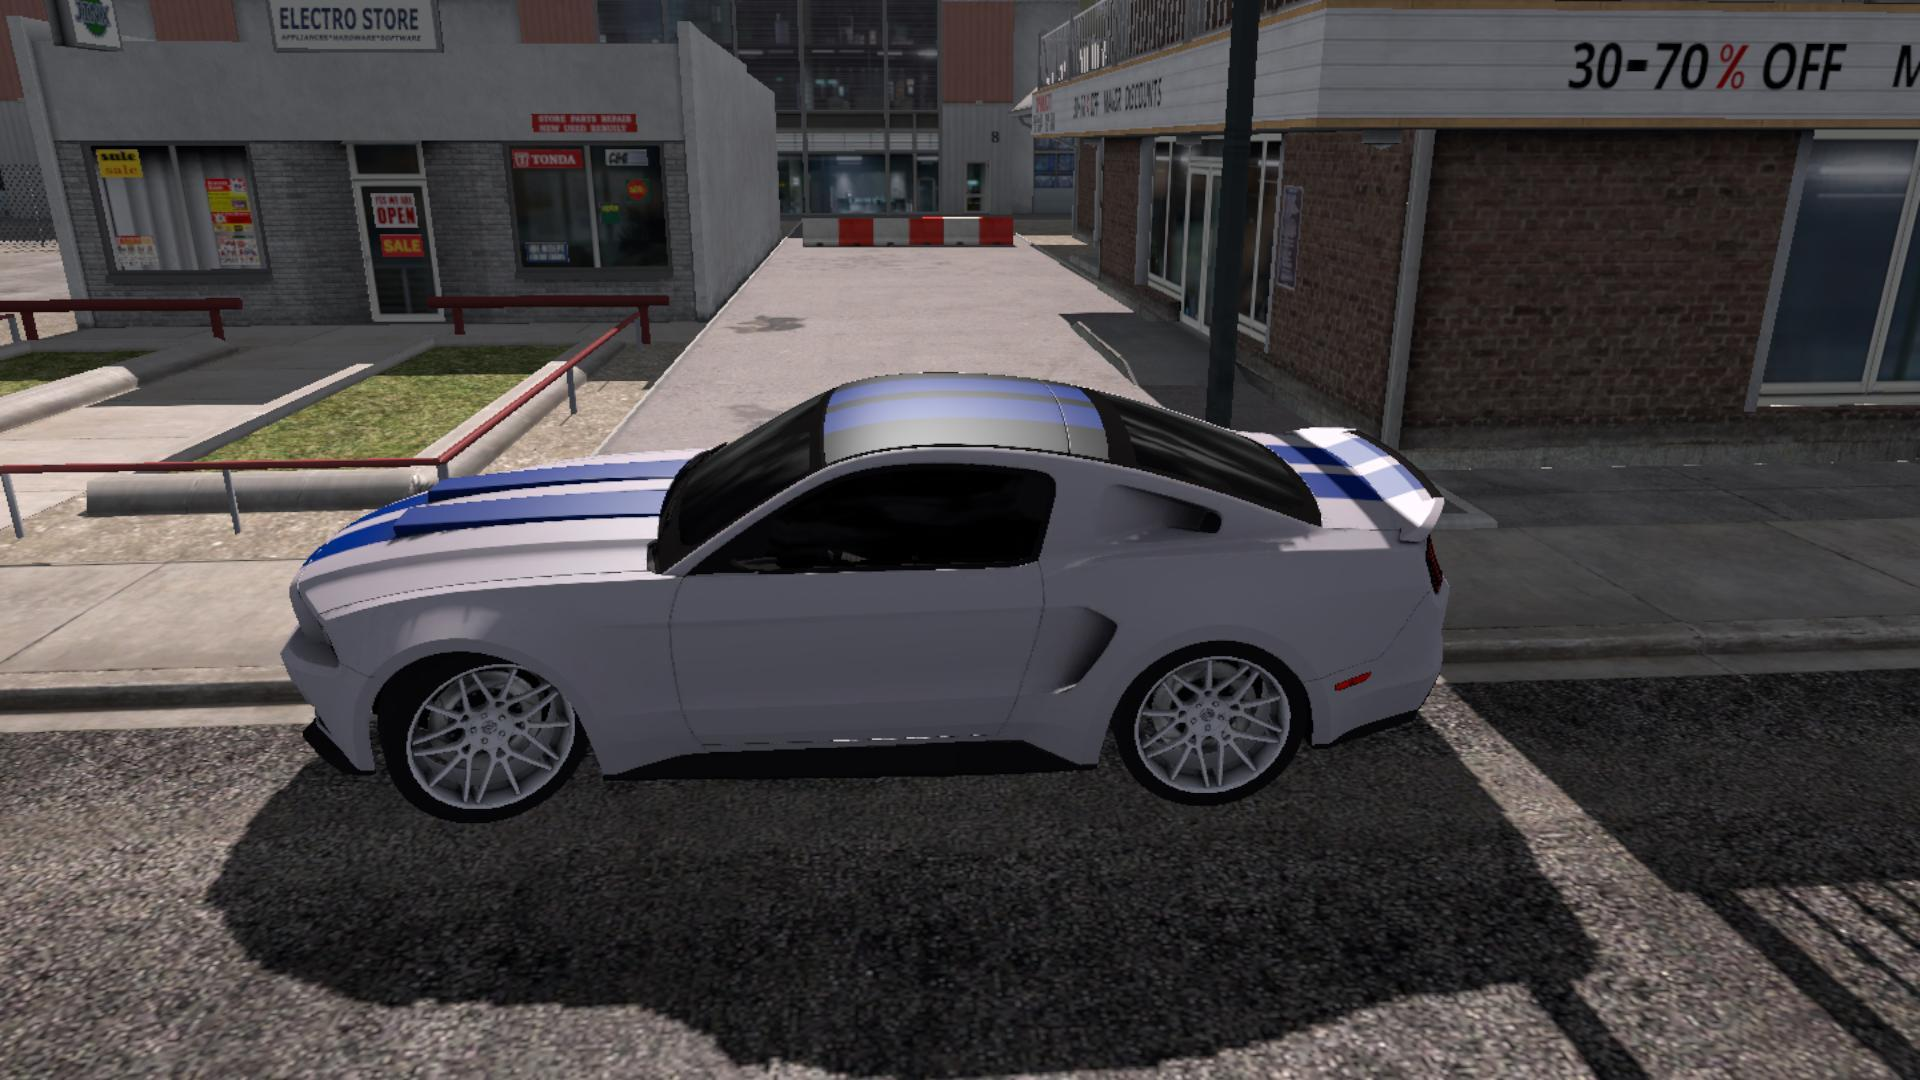 Ford Mustang Need For Speed V1 0 For Ats Euro Truck